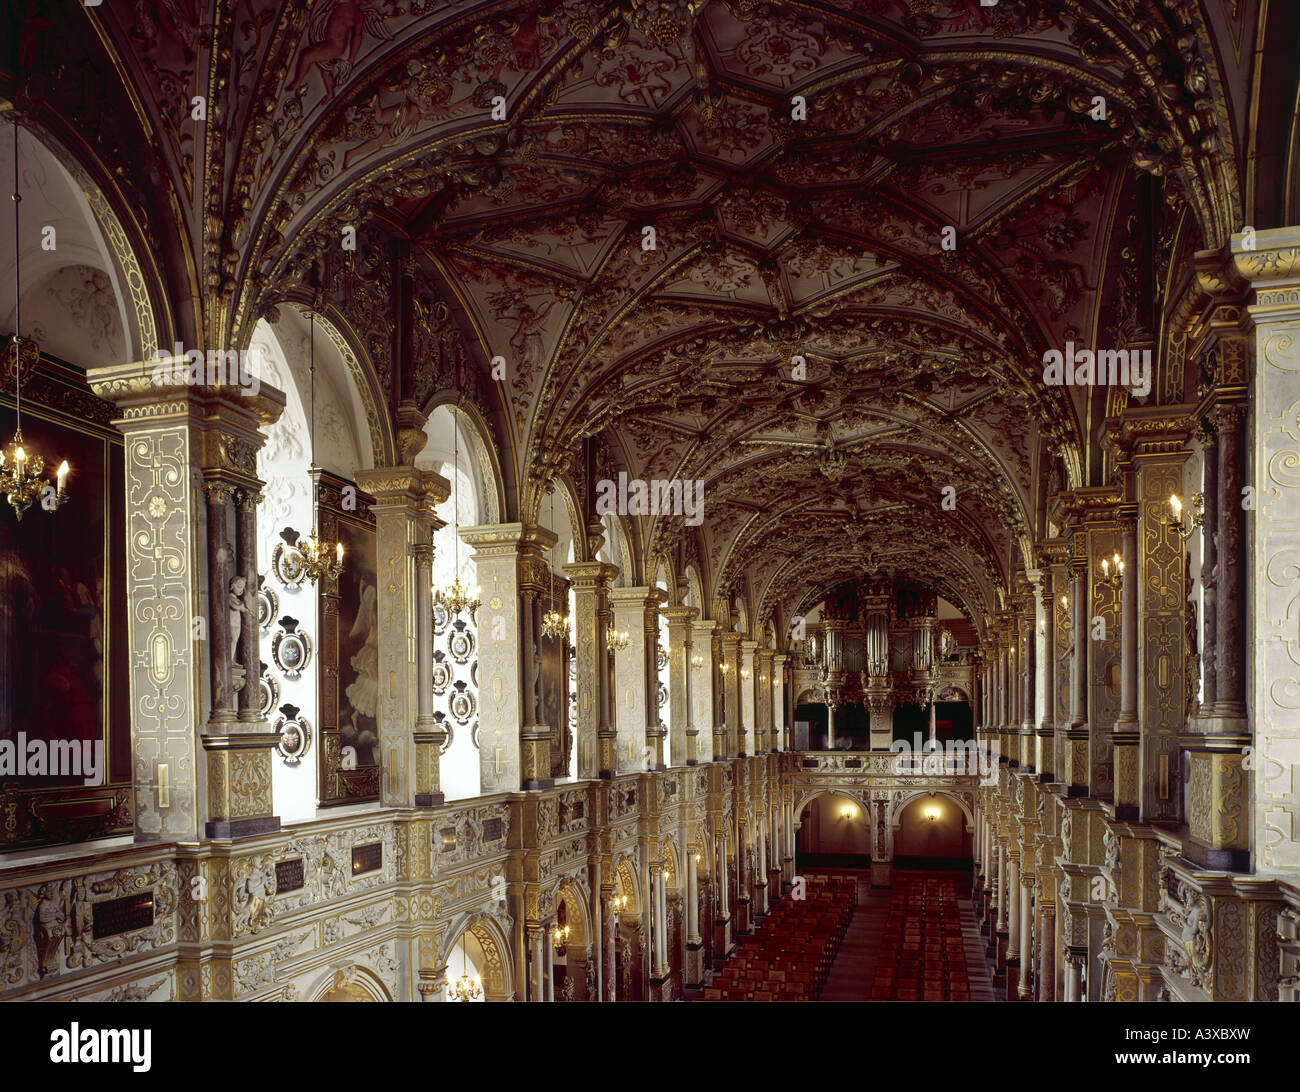 geography/travel, Denmark, Hilleroed, buildings, Frederiksborg castle, castle church, interior view, view from gallery, - Stock Image